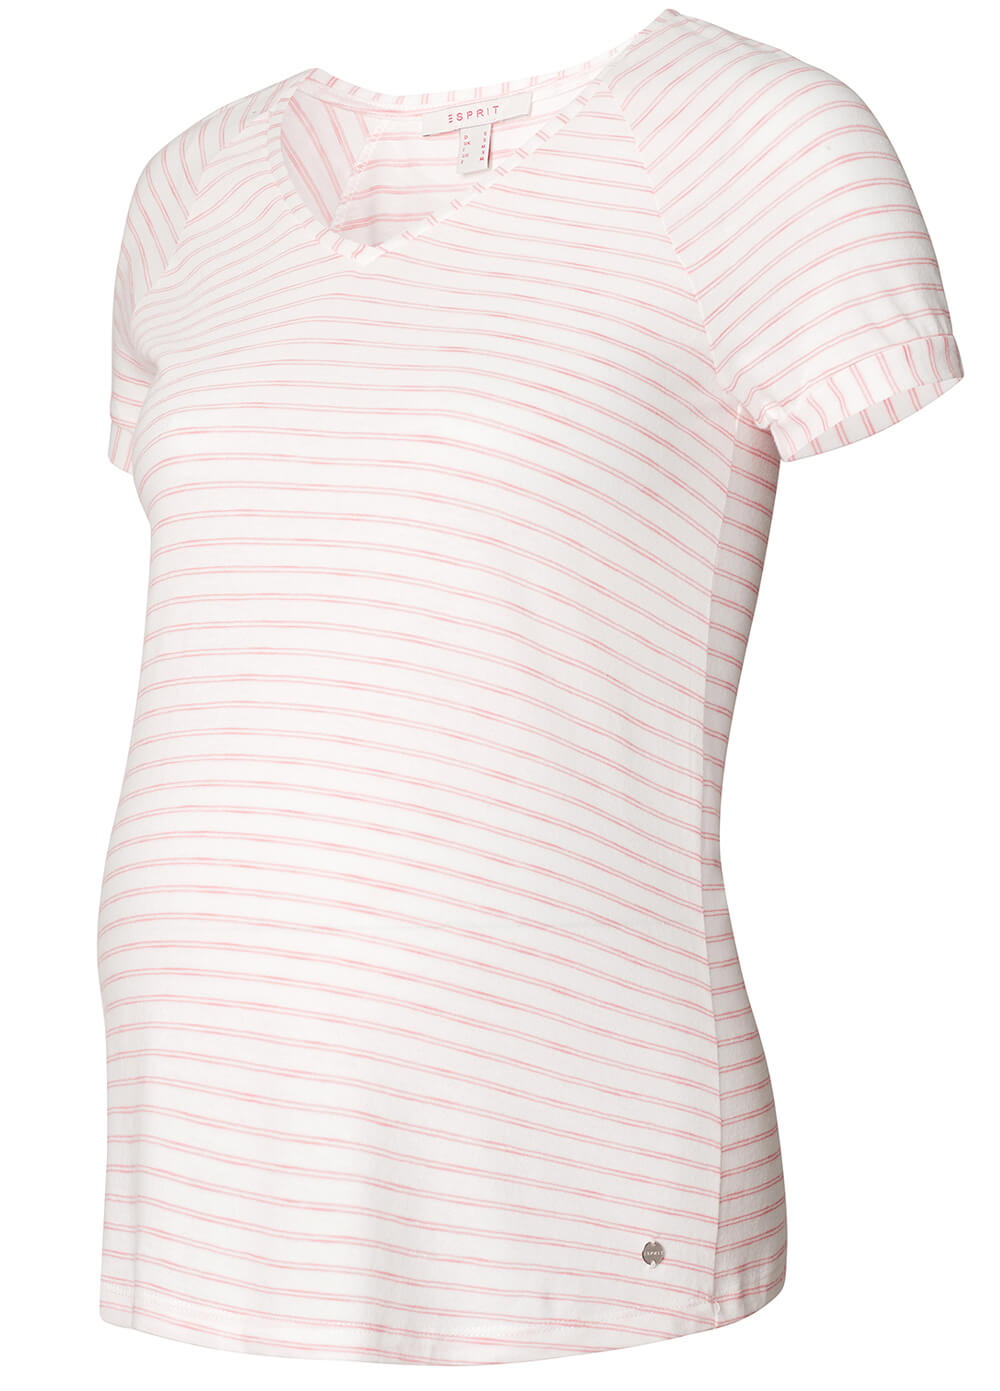 Raglan Maternity T-Shirt in Pink Stripes by Esprit